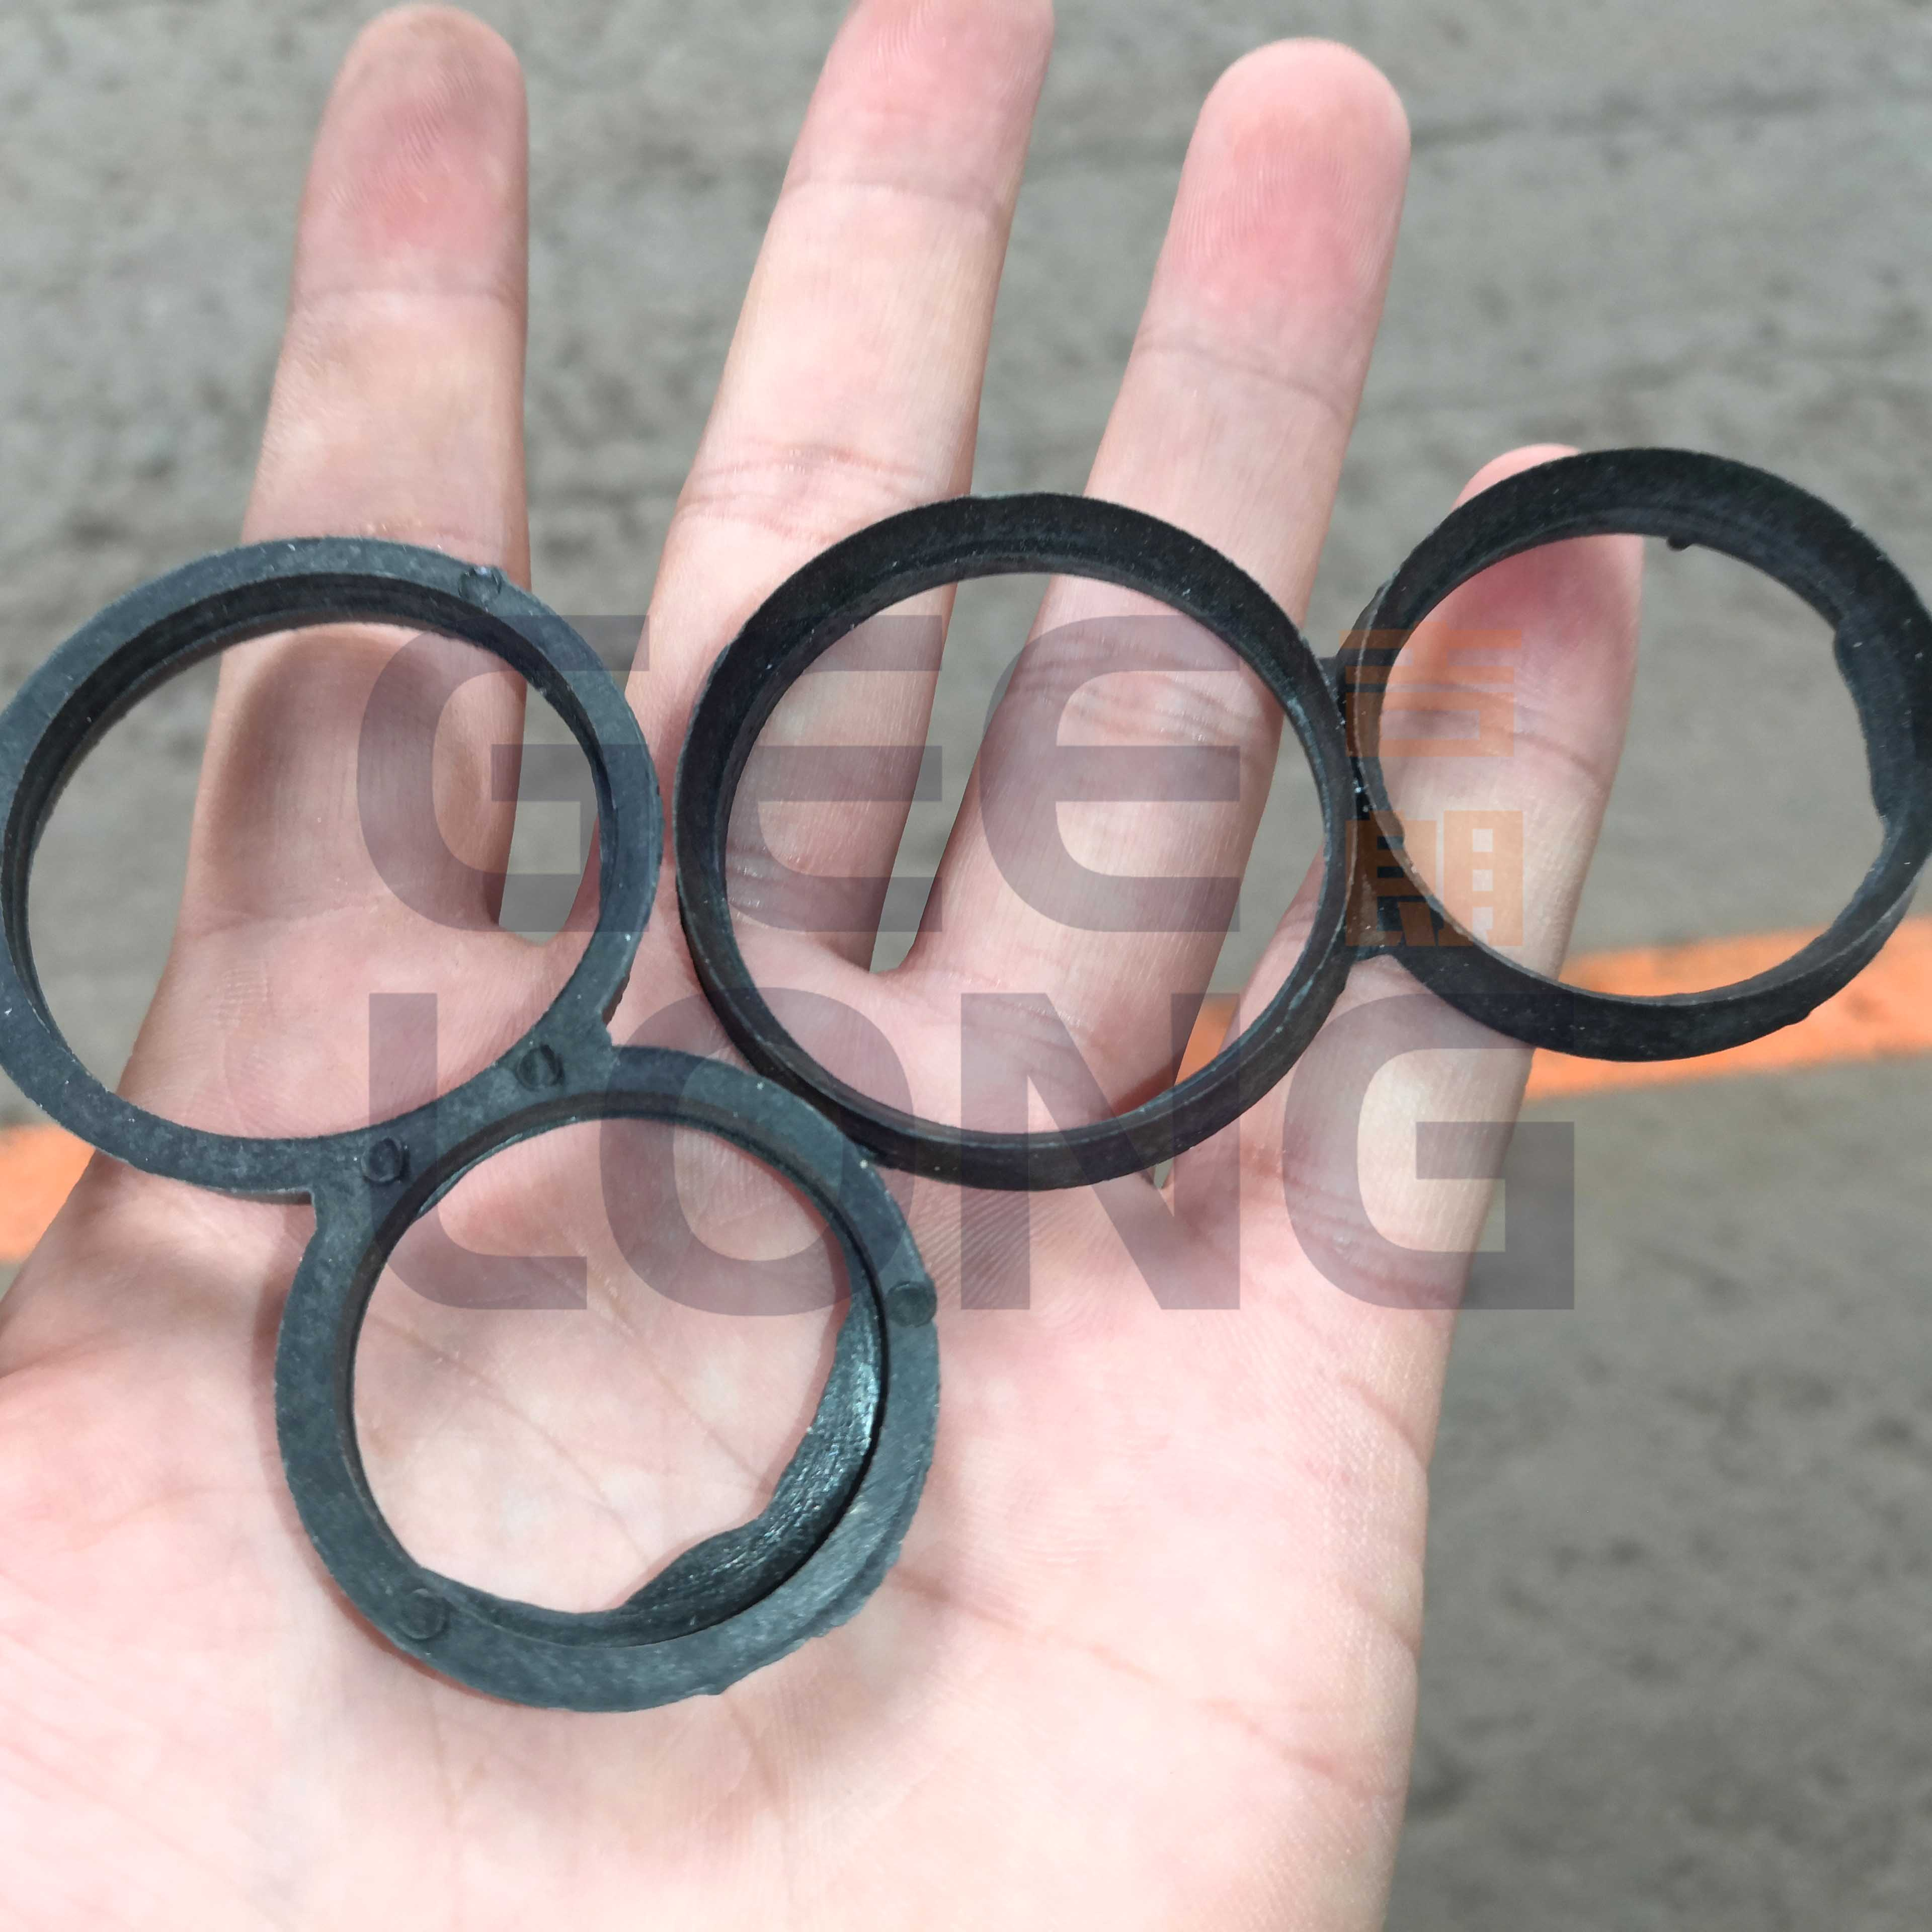 Plastic 8 ring for preventing fancy wood logs cracking